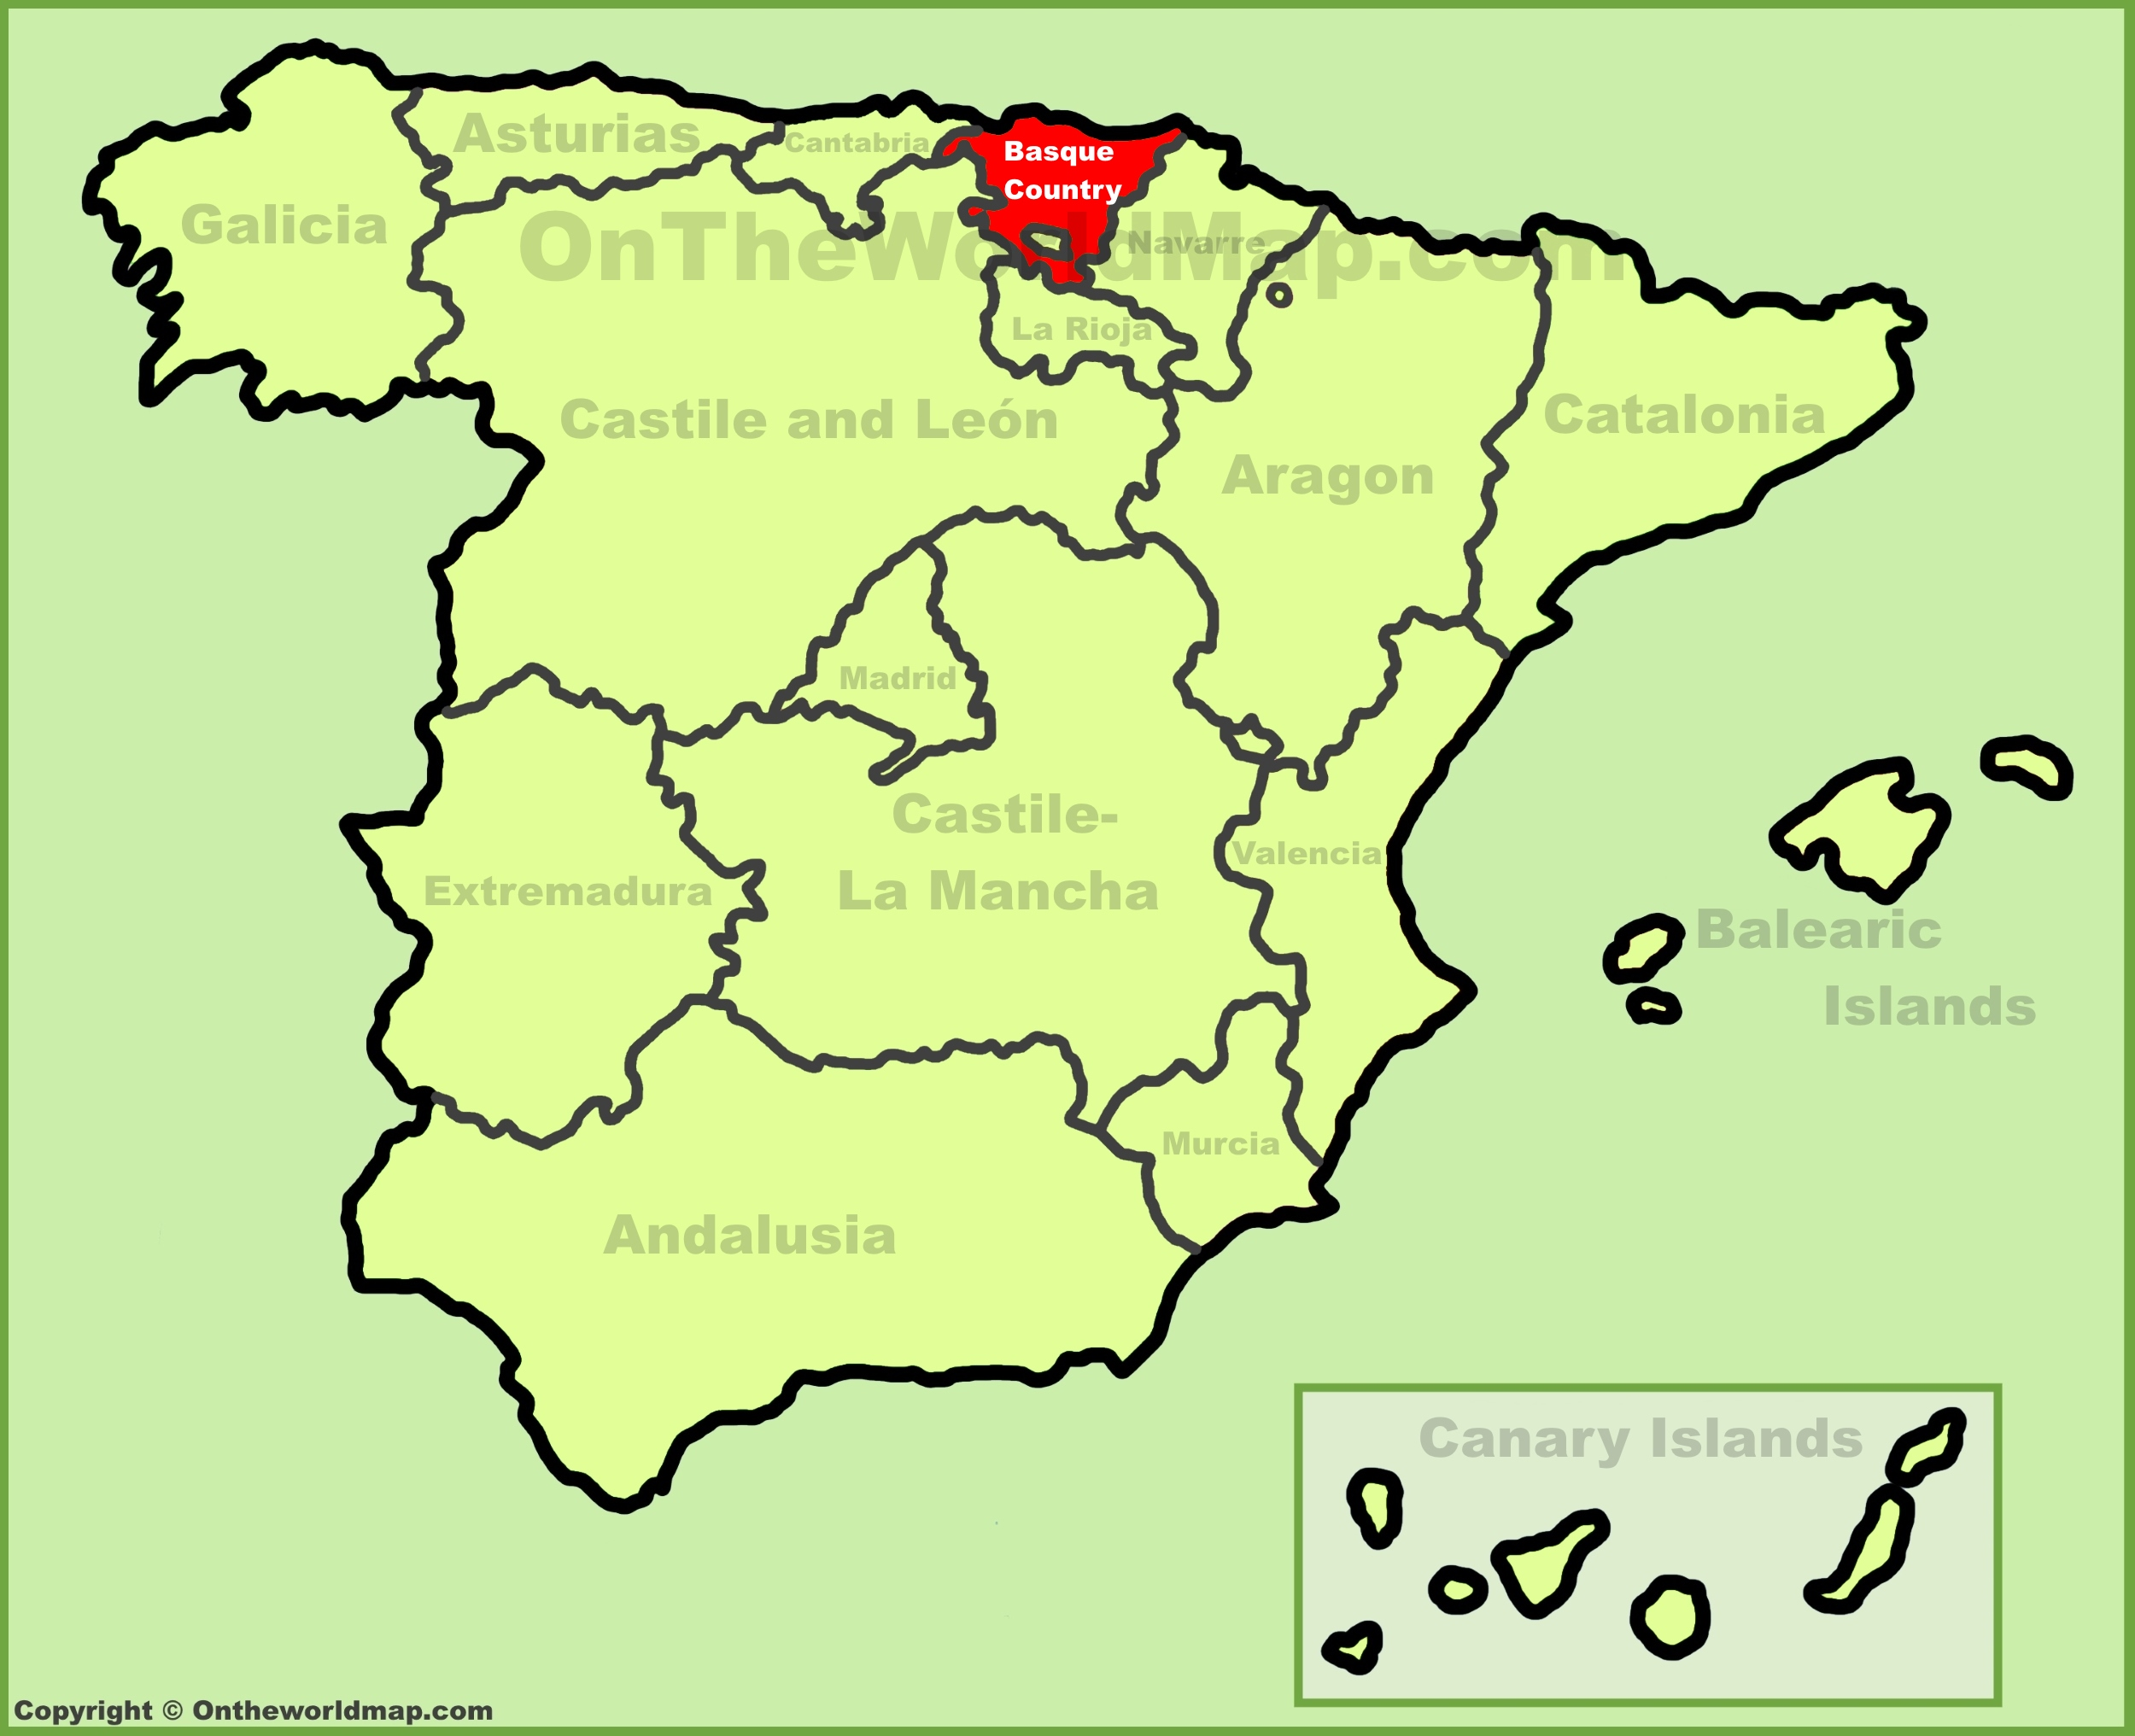 Basque Country location on the Spain map